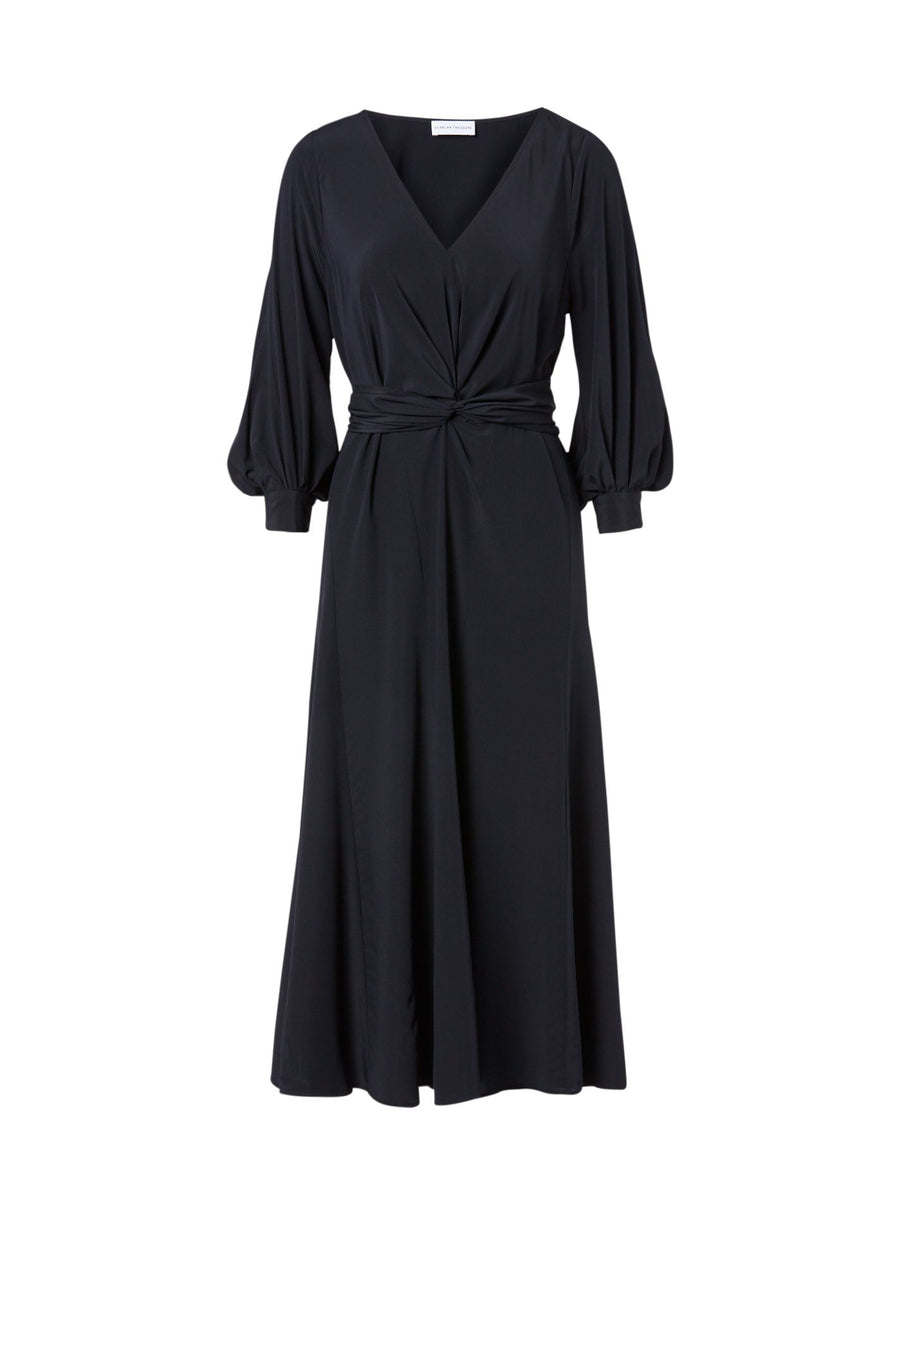 CDC Turban Twist Dress Navy, regular fit, below the knee length, ¾ blouson sleeves, v-neckline.